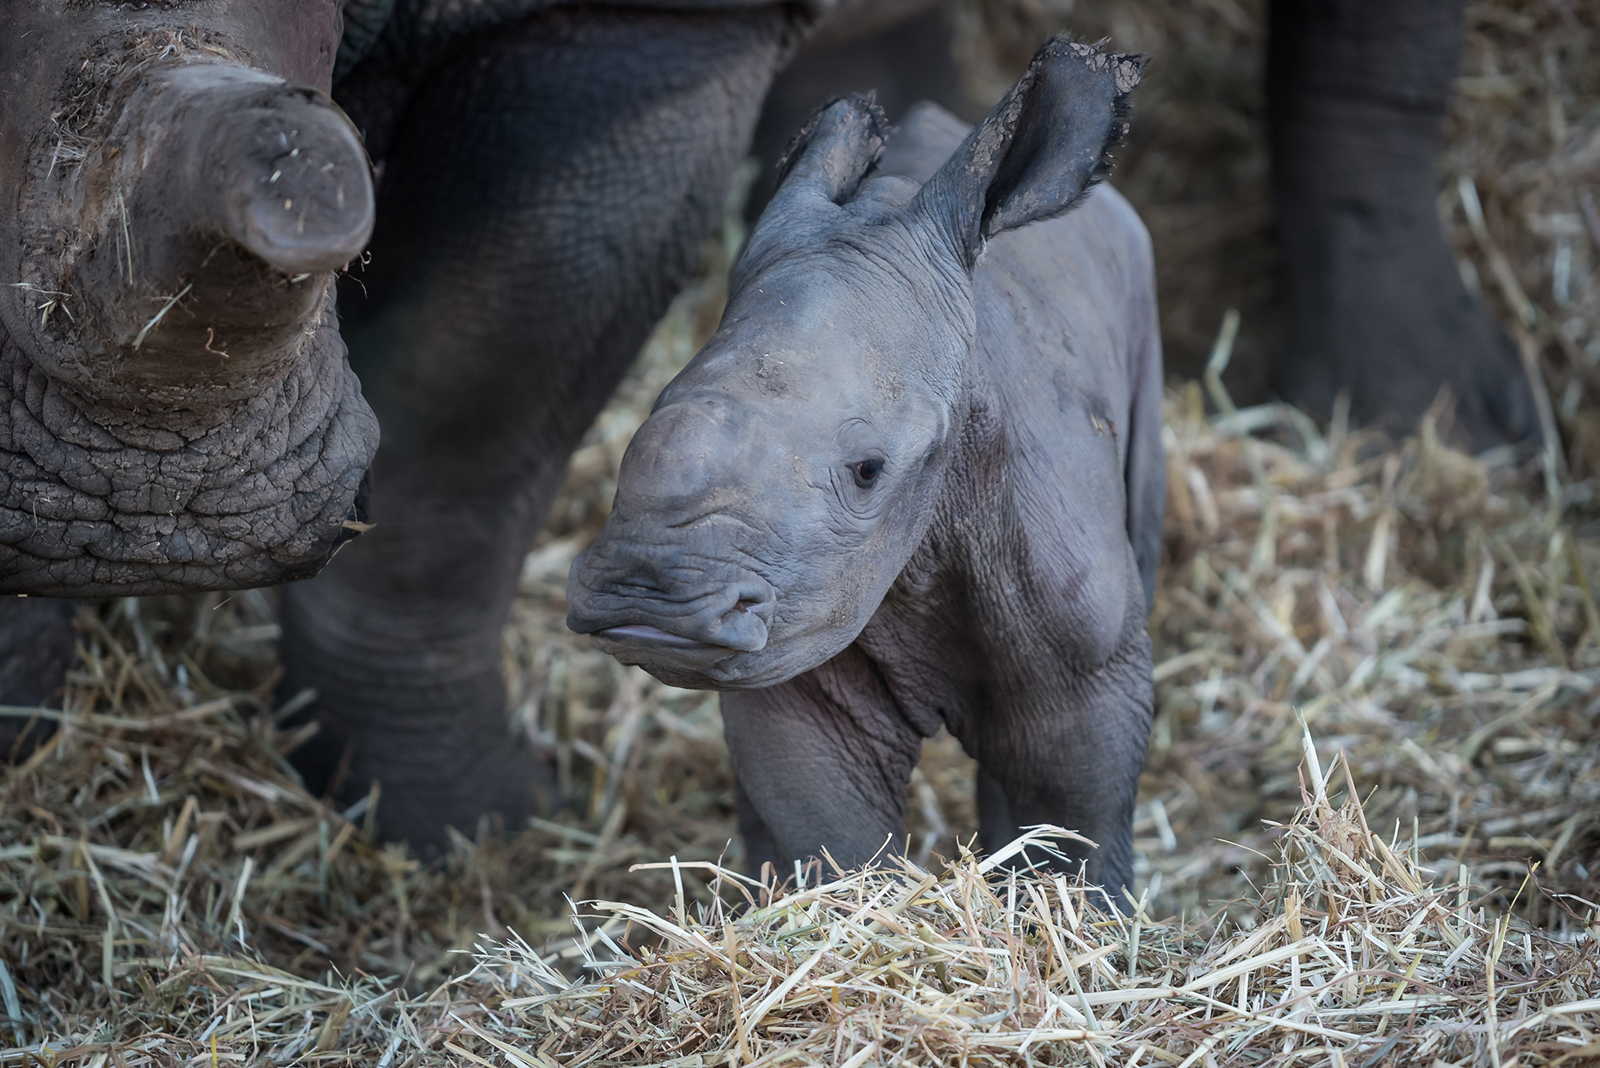 Rare white rhino calf born at Zoological Center of Tel Aviv-Ramat Gan, August 2016. Photo by Shai Ben Naftali